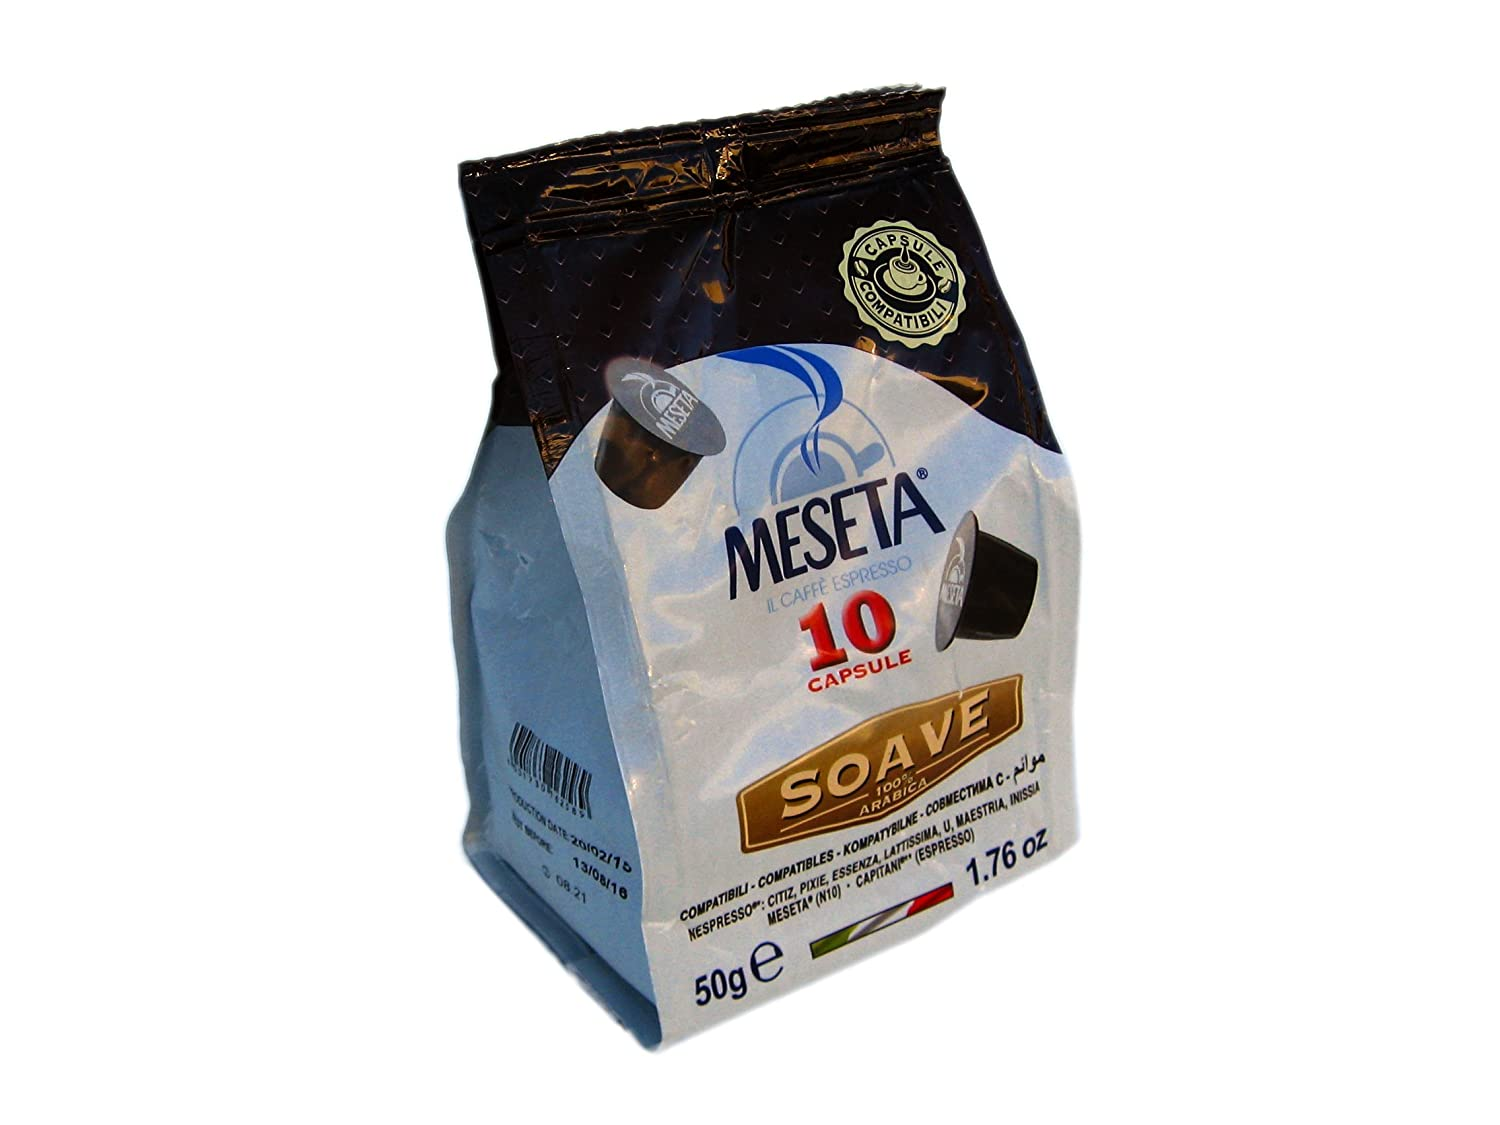 Nespresso Compatible Meseta Coffee Capsules . 80 Capsules of Gourmet 100% Arabica Coffee Espresso Compatible with Nespresso Machine